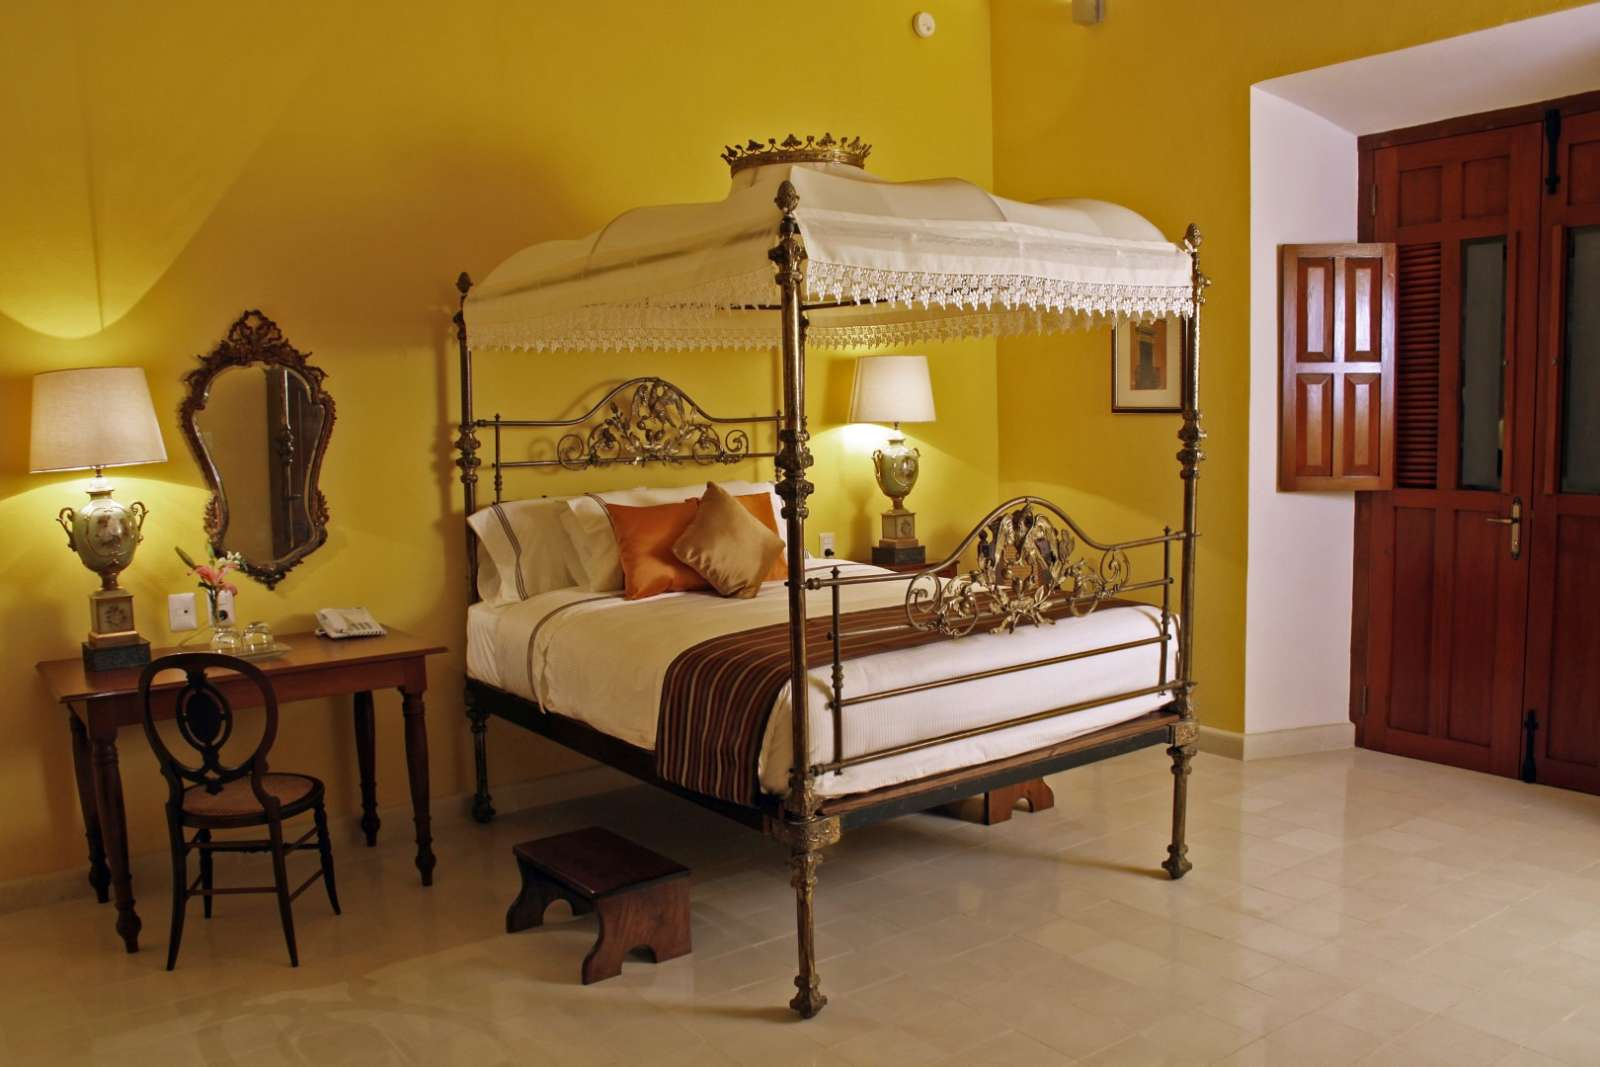 Four poster bed at Casa Don Gustavo Campeche